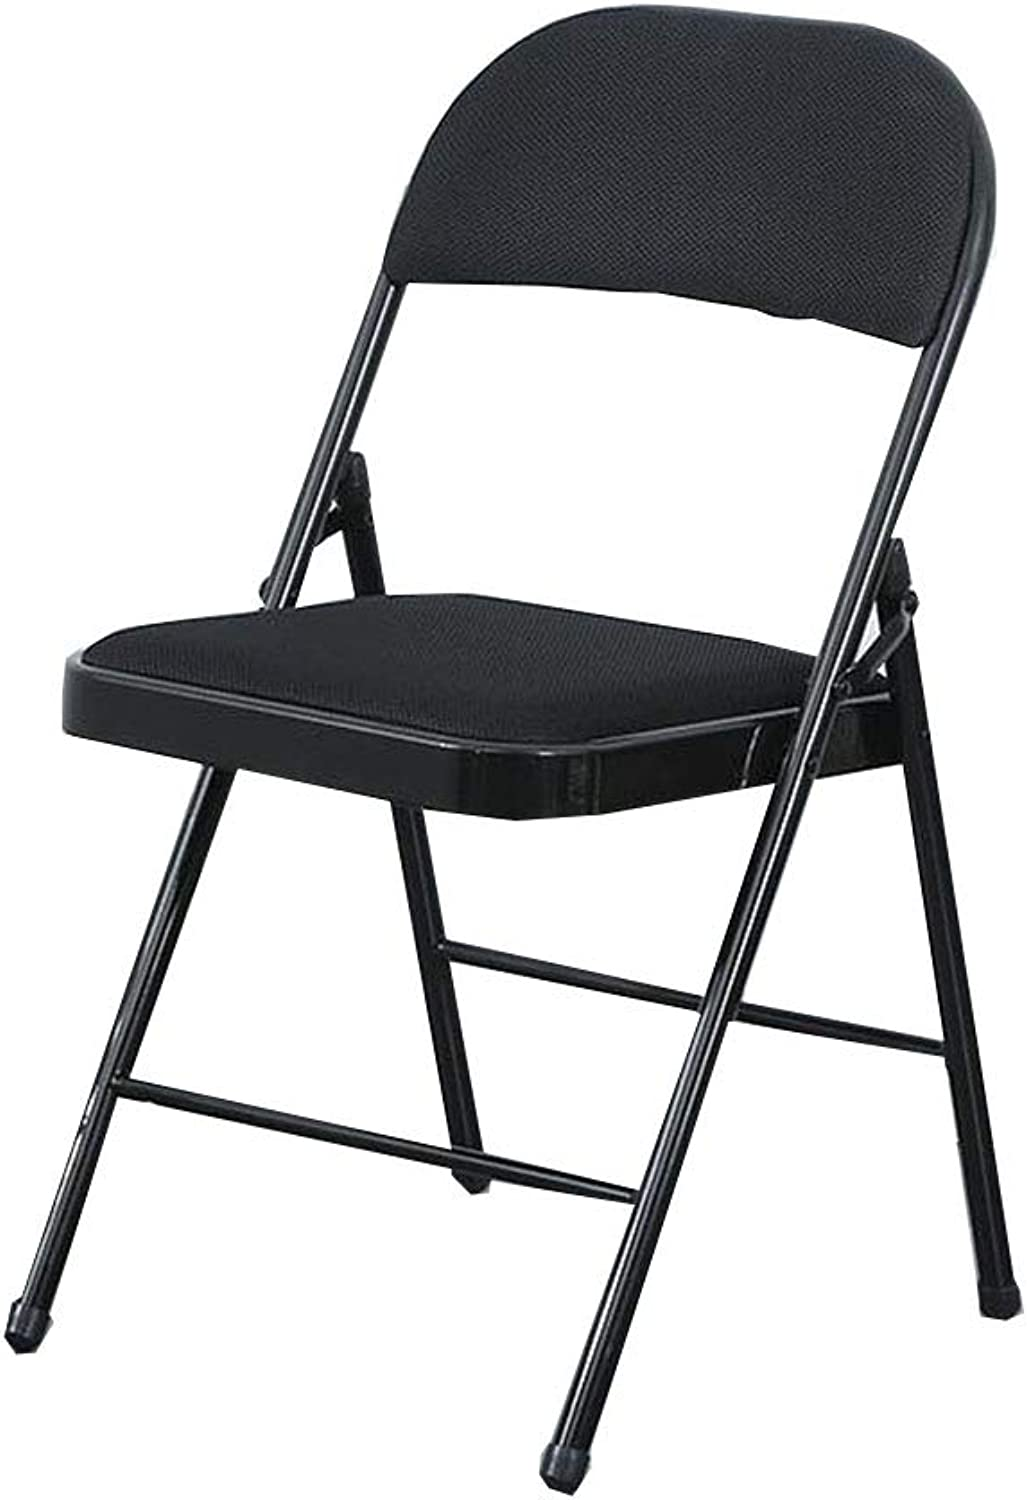 Household Folding Chair Meeting Training Dormitory Computer Simple Stool(47  45  88cm) (color   Black)